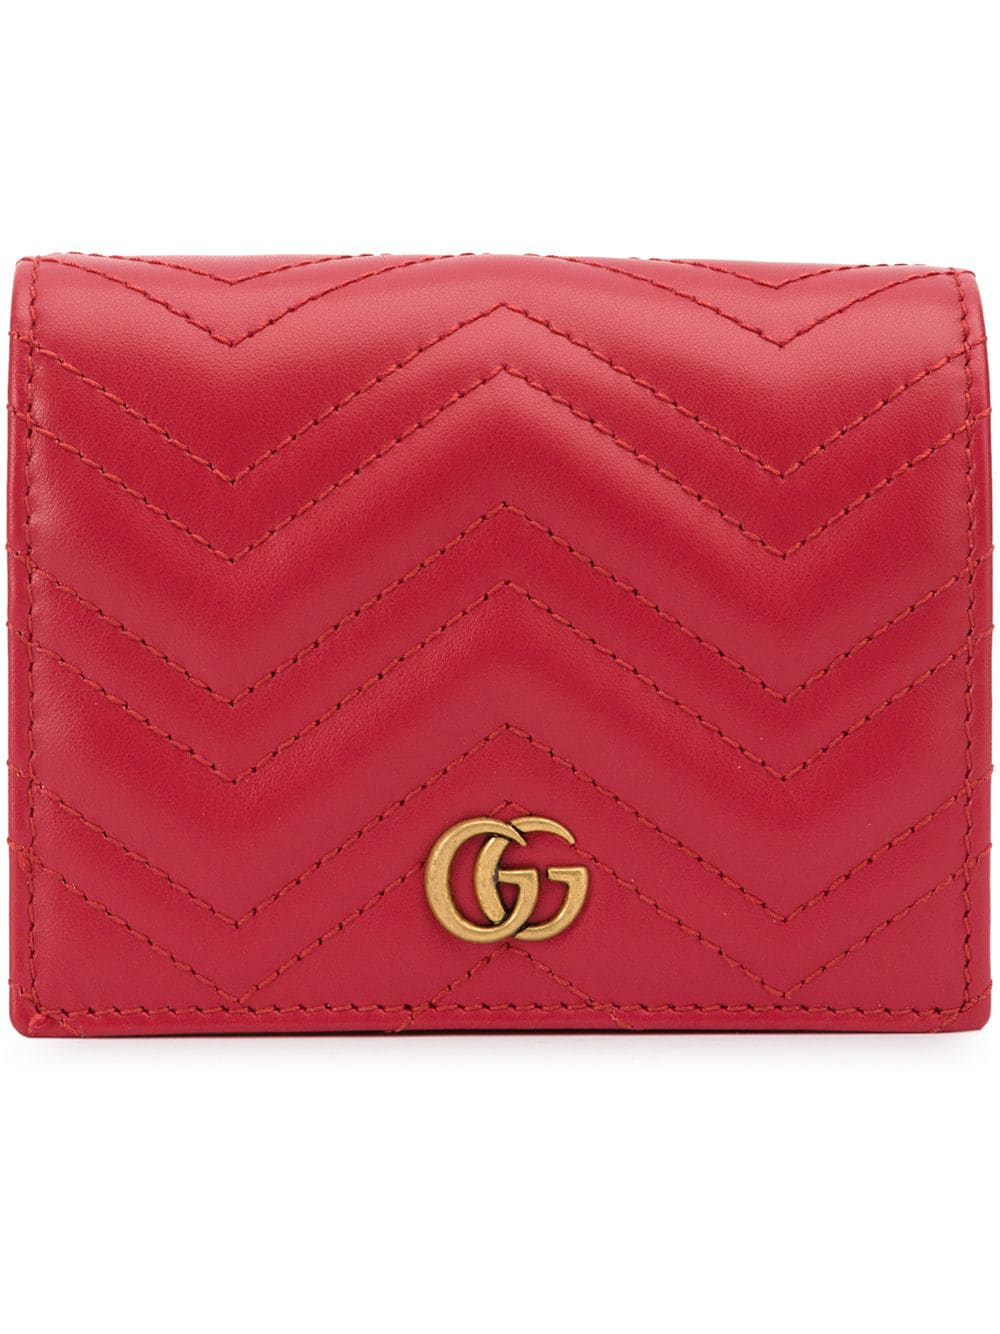 38792026449 Gucci Gg Marmont Purse - Red